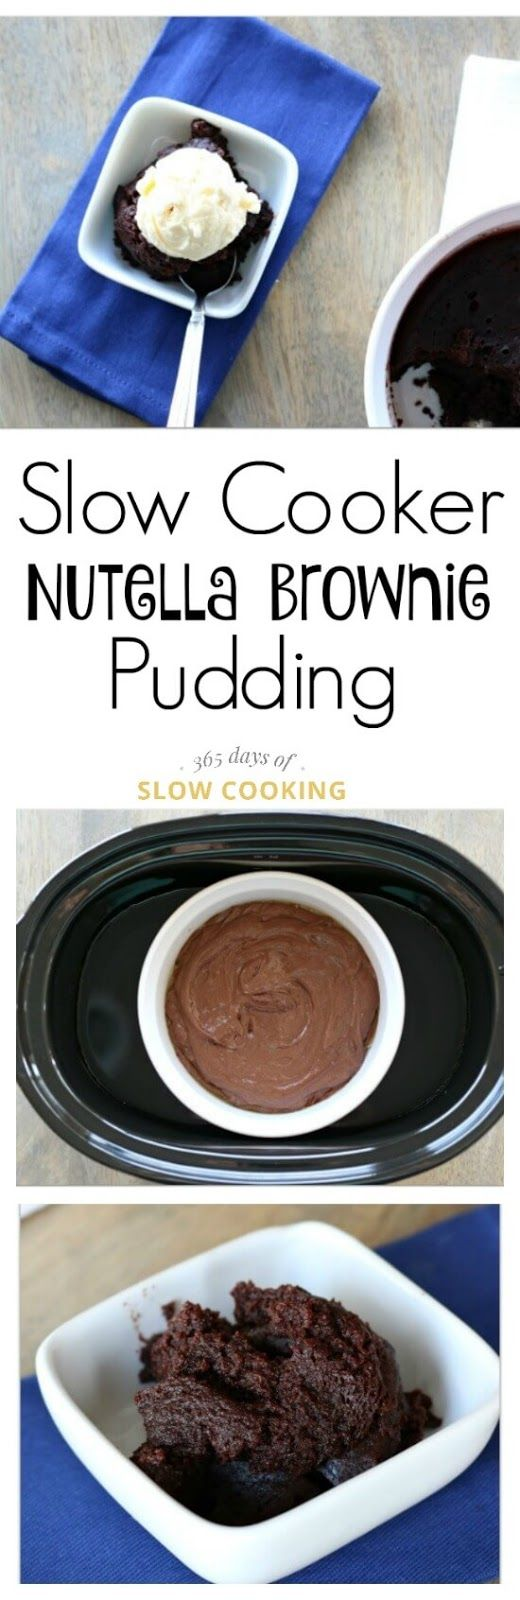 Slow Cooker Nutella Brownie Pudding Recipe--dense and moist and chocolatey